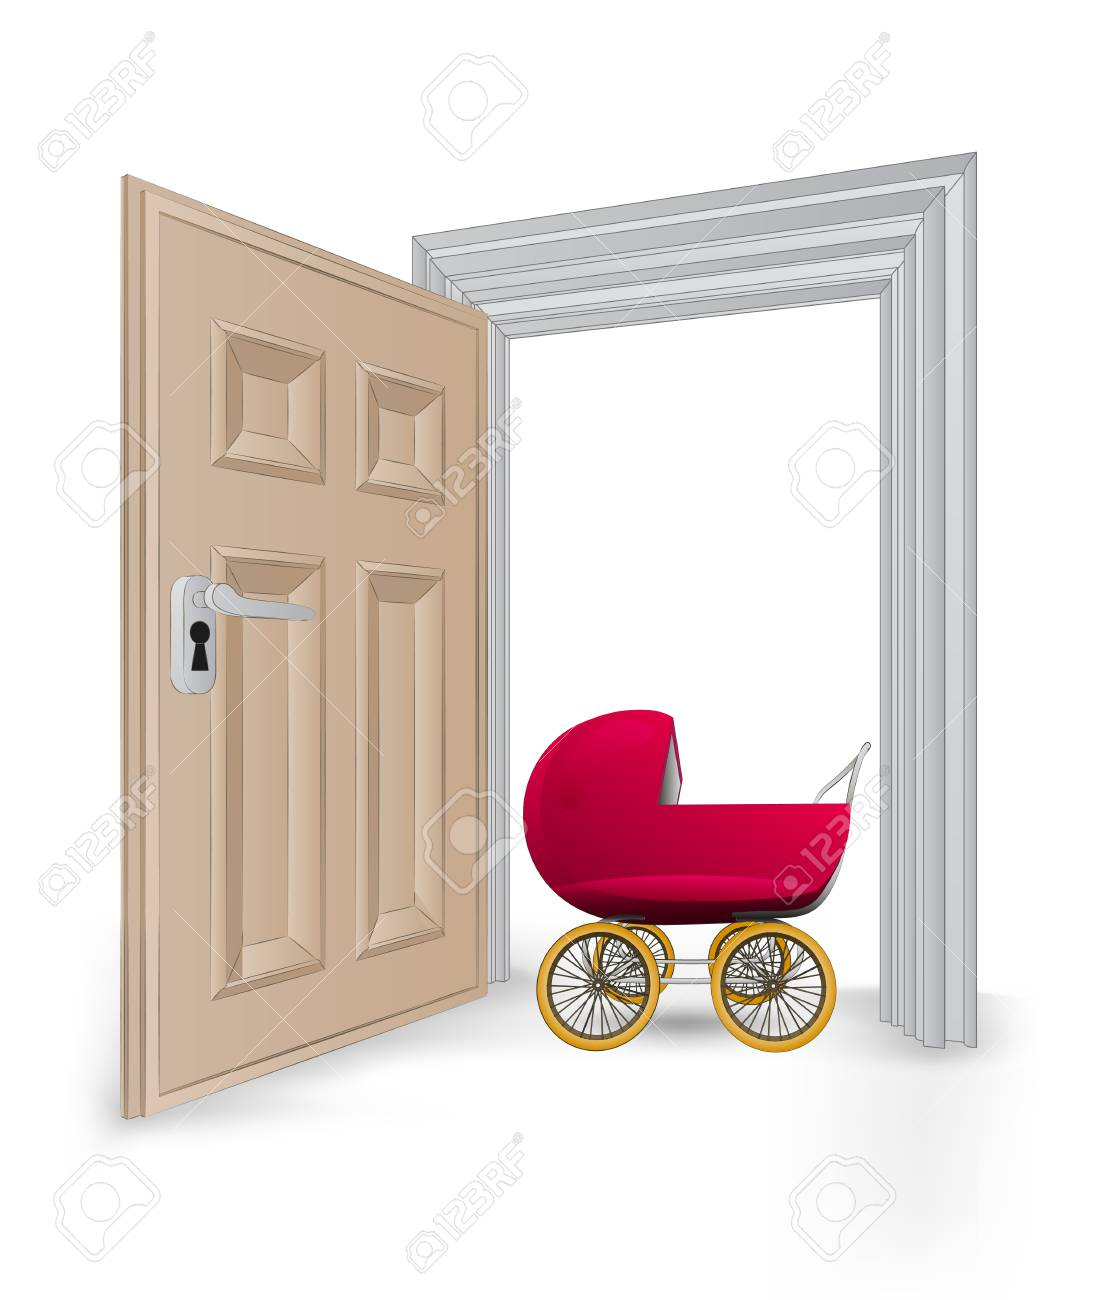 open isolated doorway frame with baby carriage vector illustration Stock Vector - 24668216